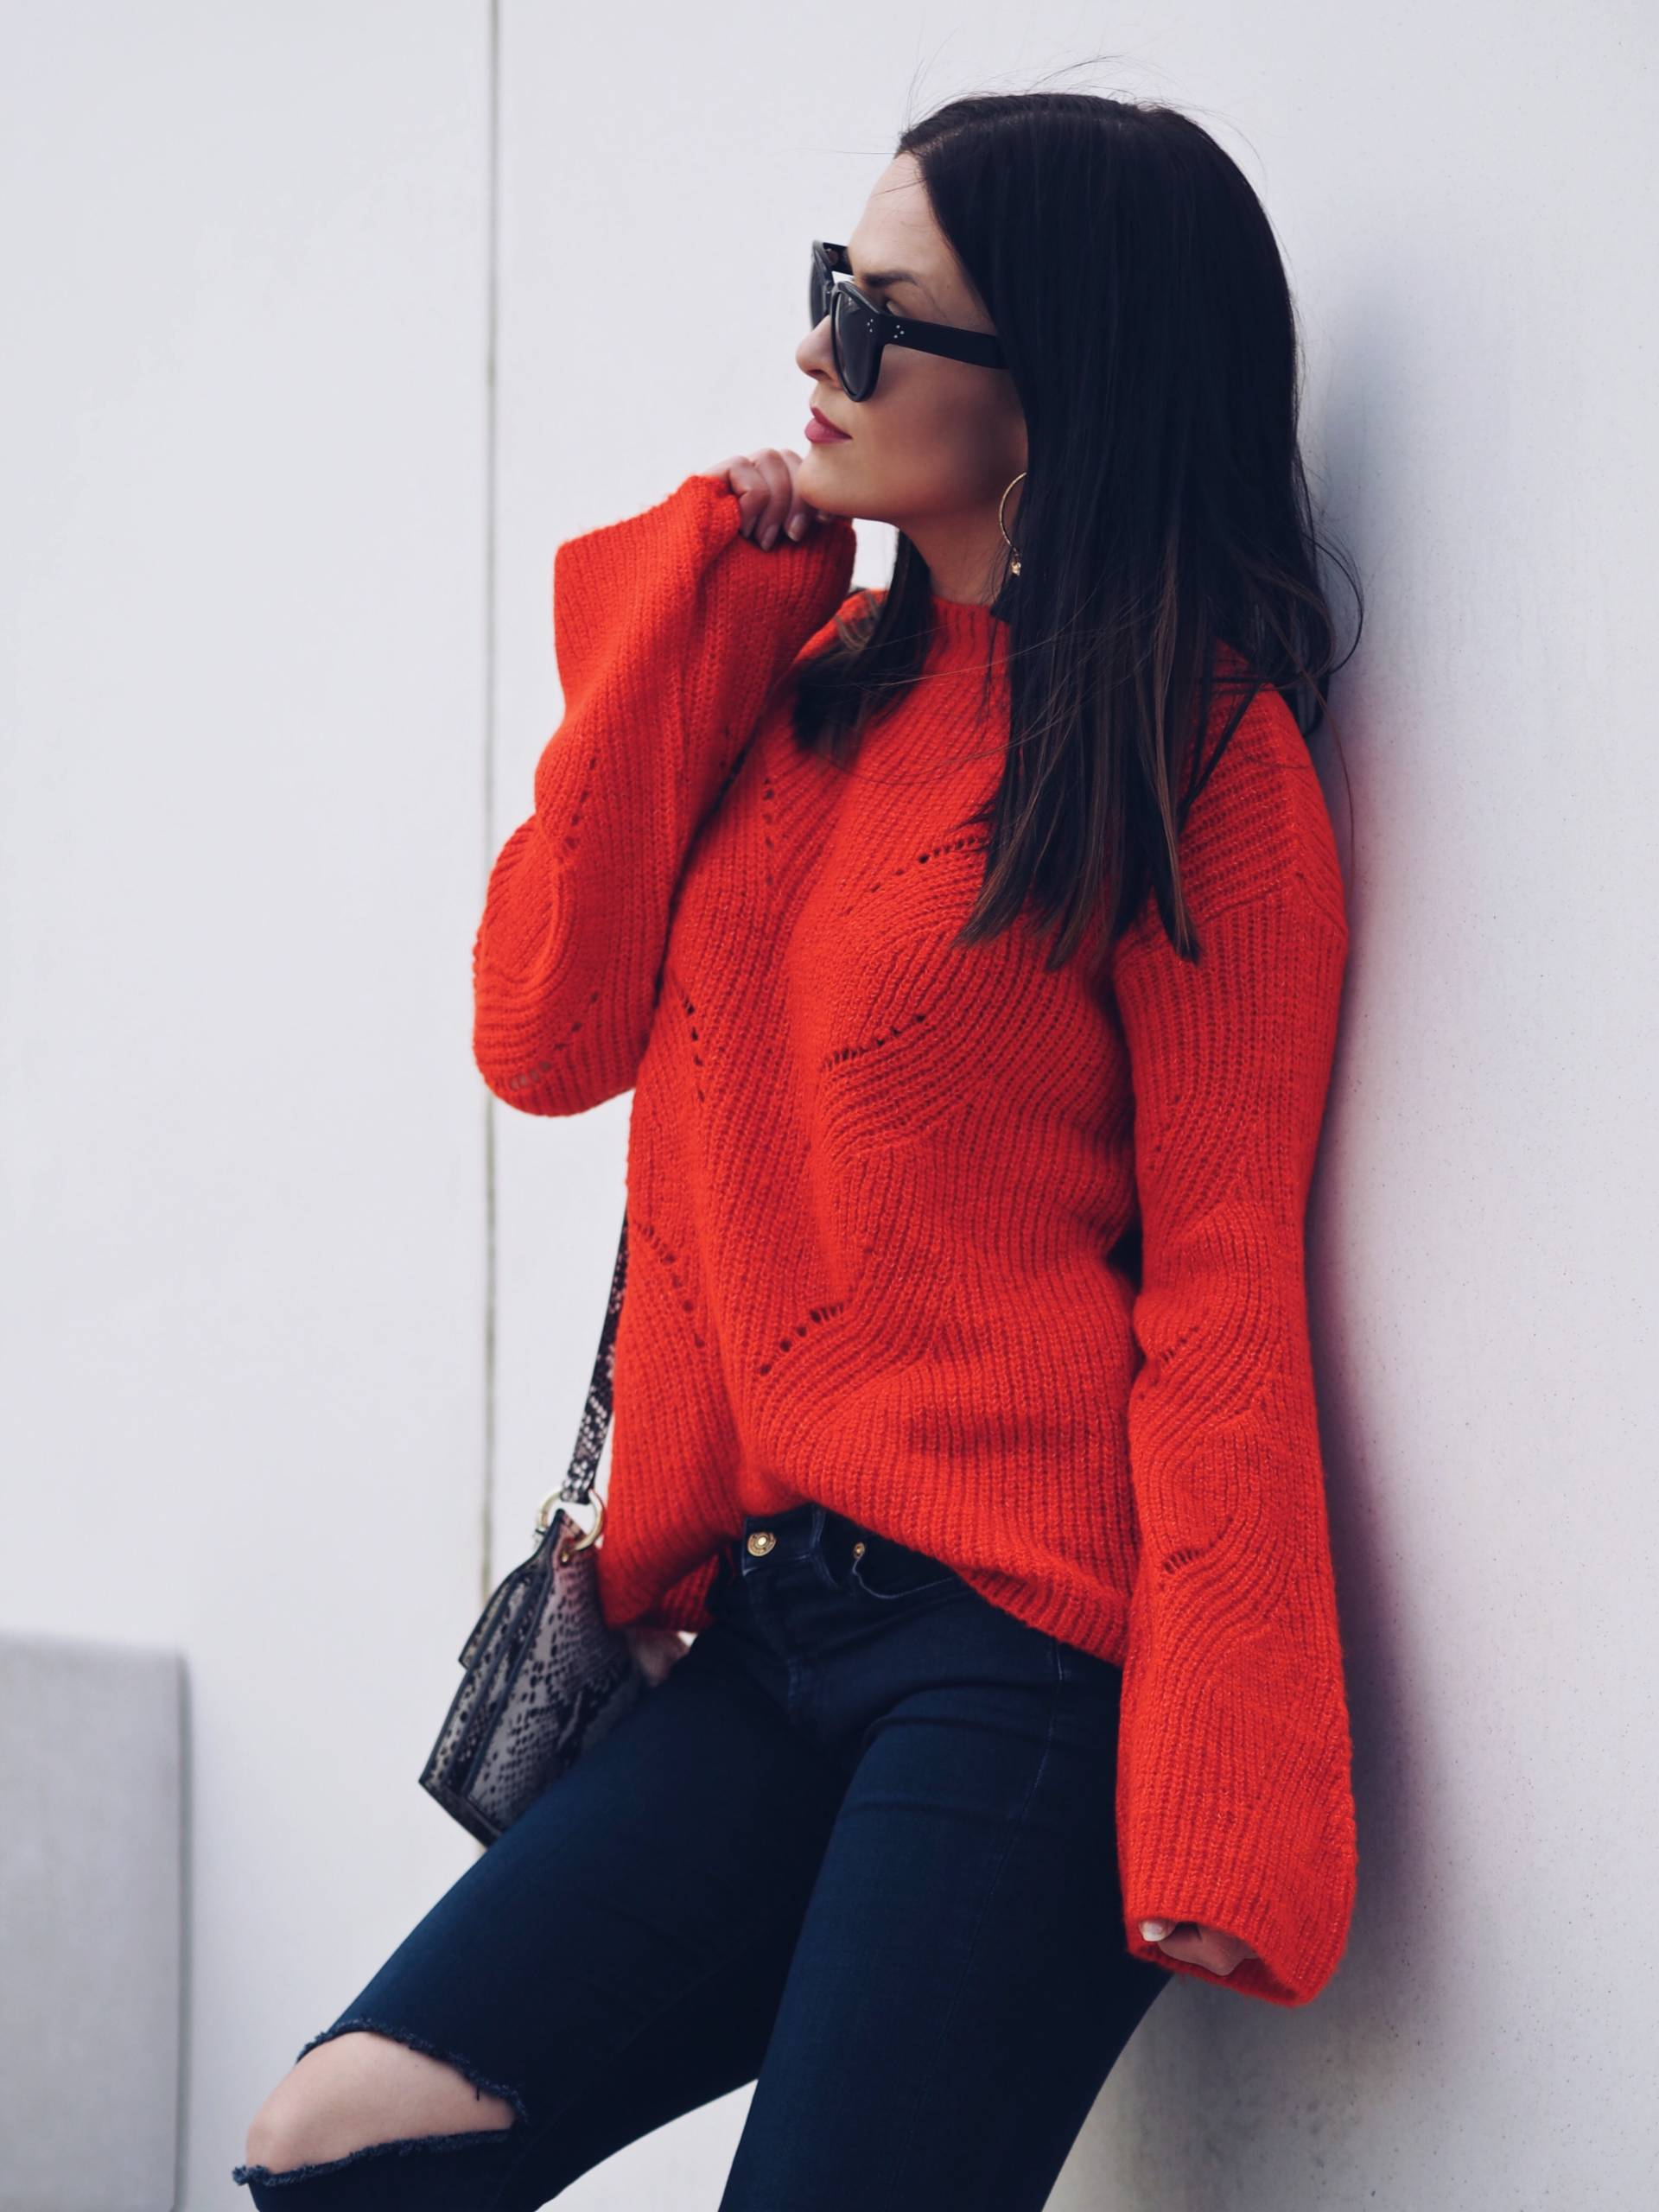 SPRING-CASUAL-CHIC-WEEKEND-LOOK-LABEL-ONLINE-LAFOTKA-FASHION-BLOGGER